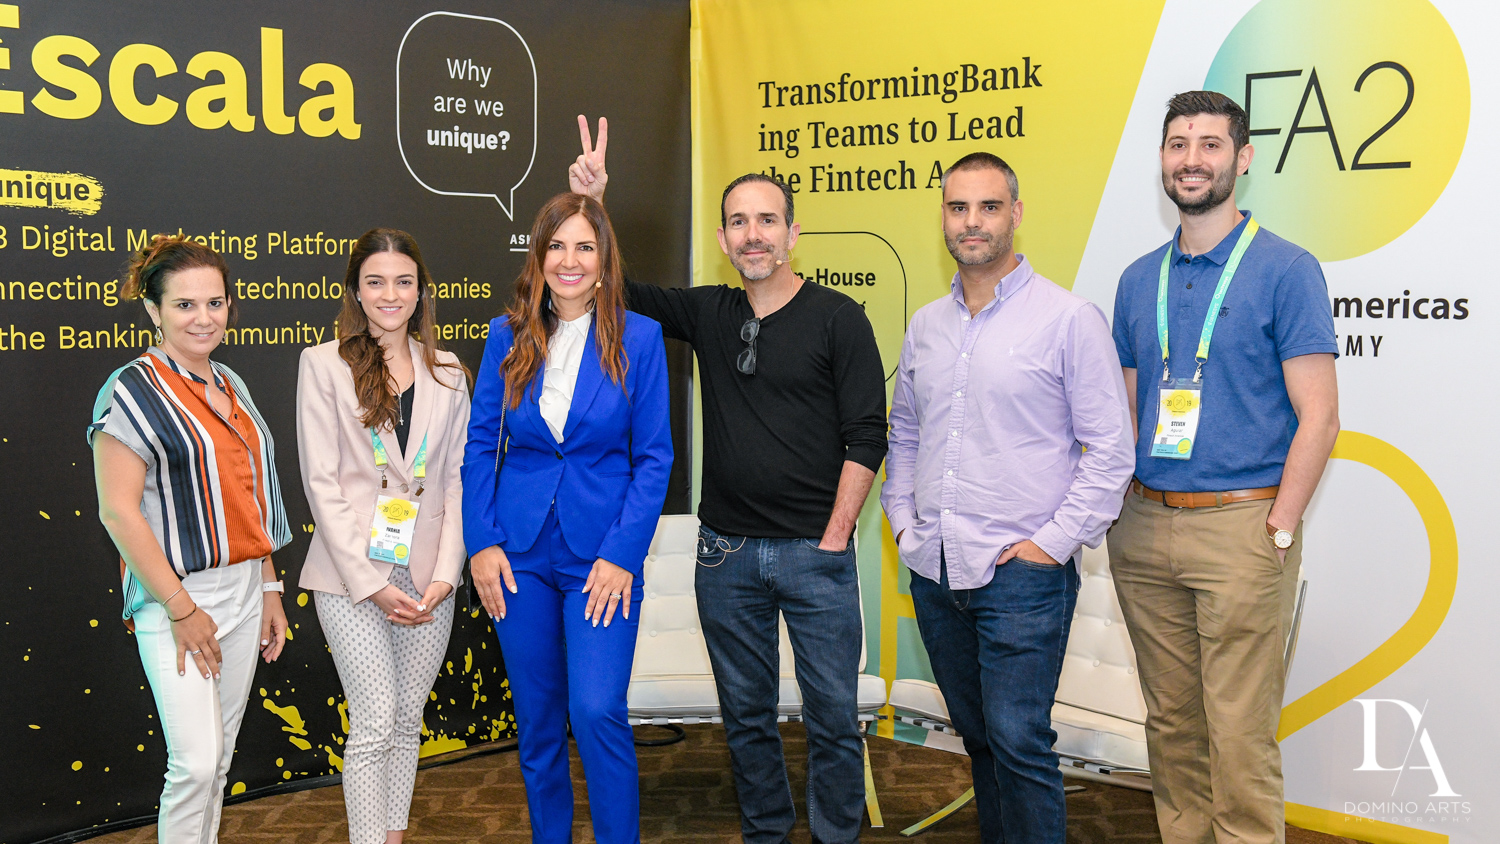 fun portraits at Fintech Americas Banking Conference Miami by Domino Arts Photography